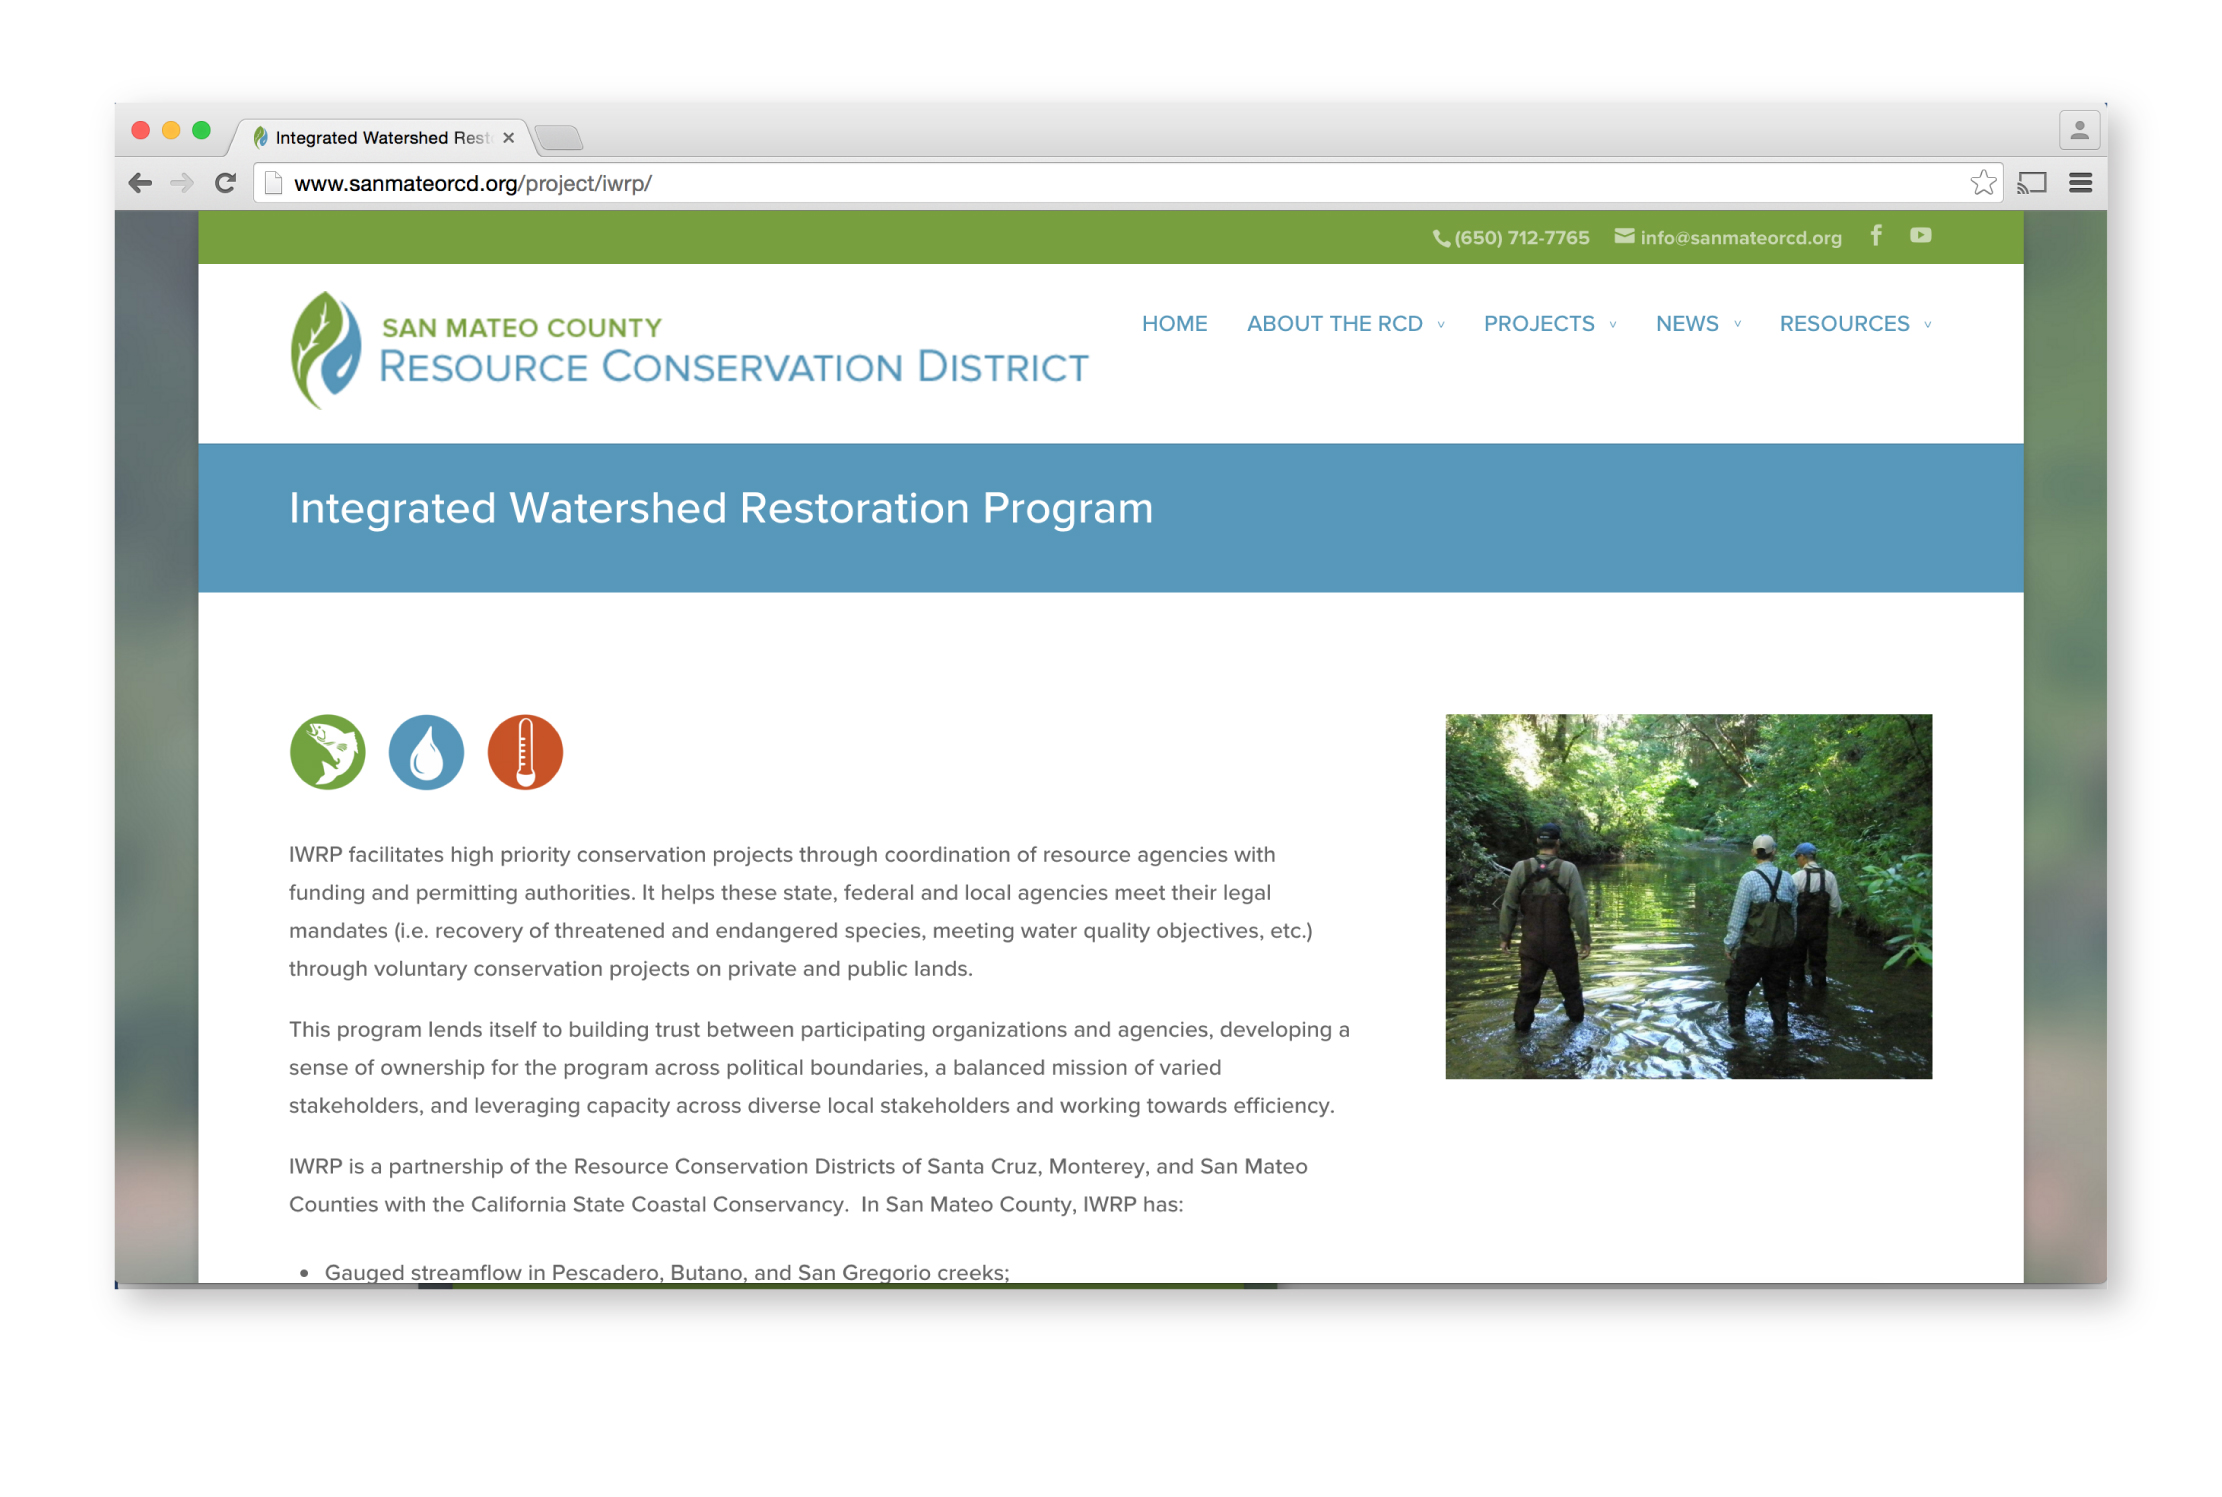 RCD Website Project Page